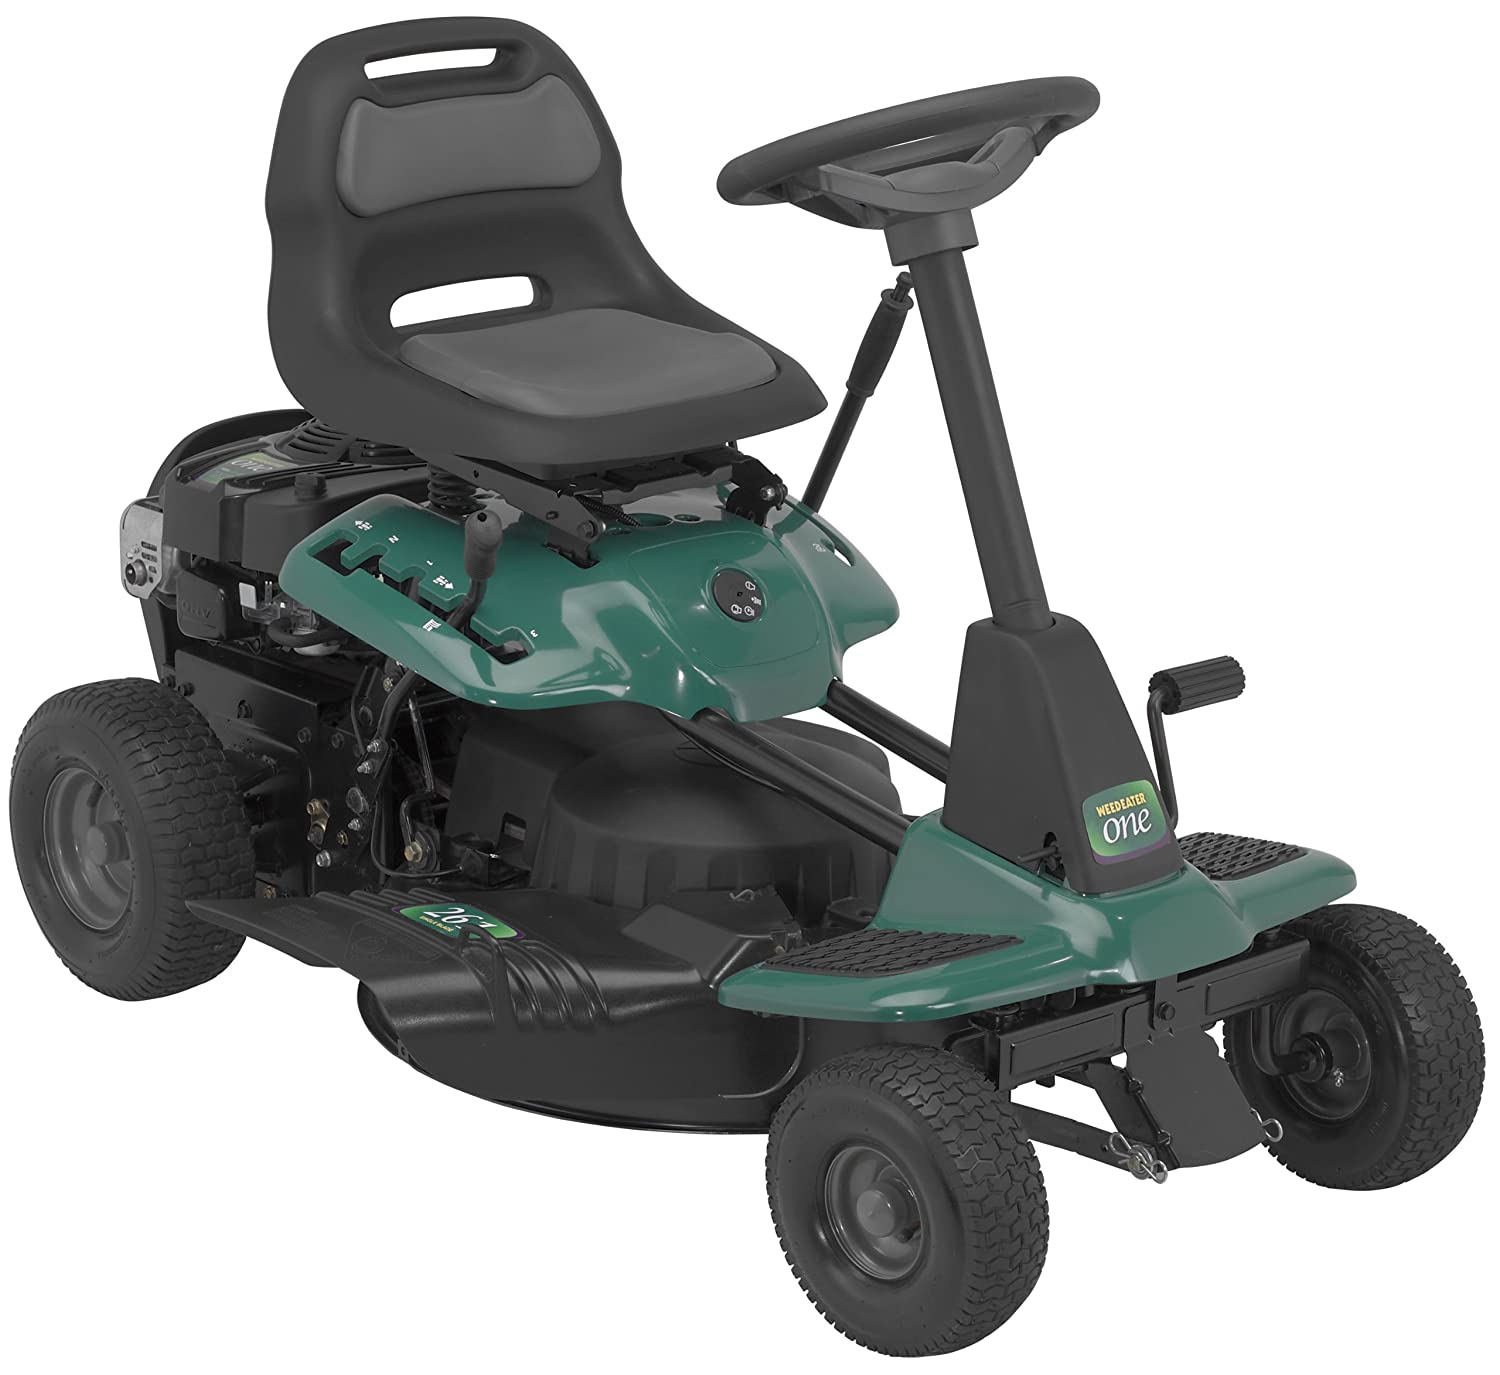 Riding lawn mower won t start - Amazon Com Weed Eater We One 26 Inch 190cc Briggs Patio Lawn Garden